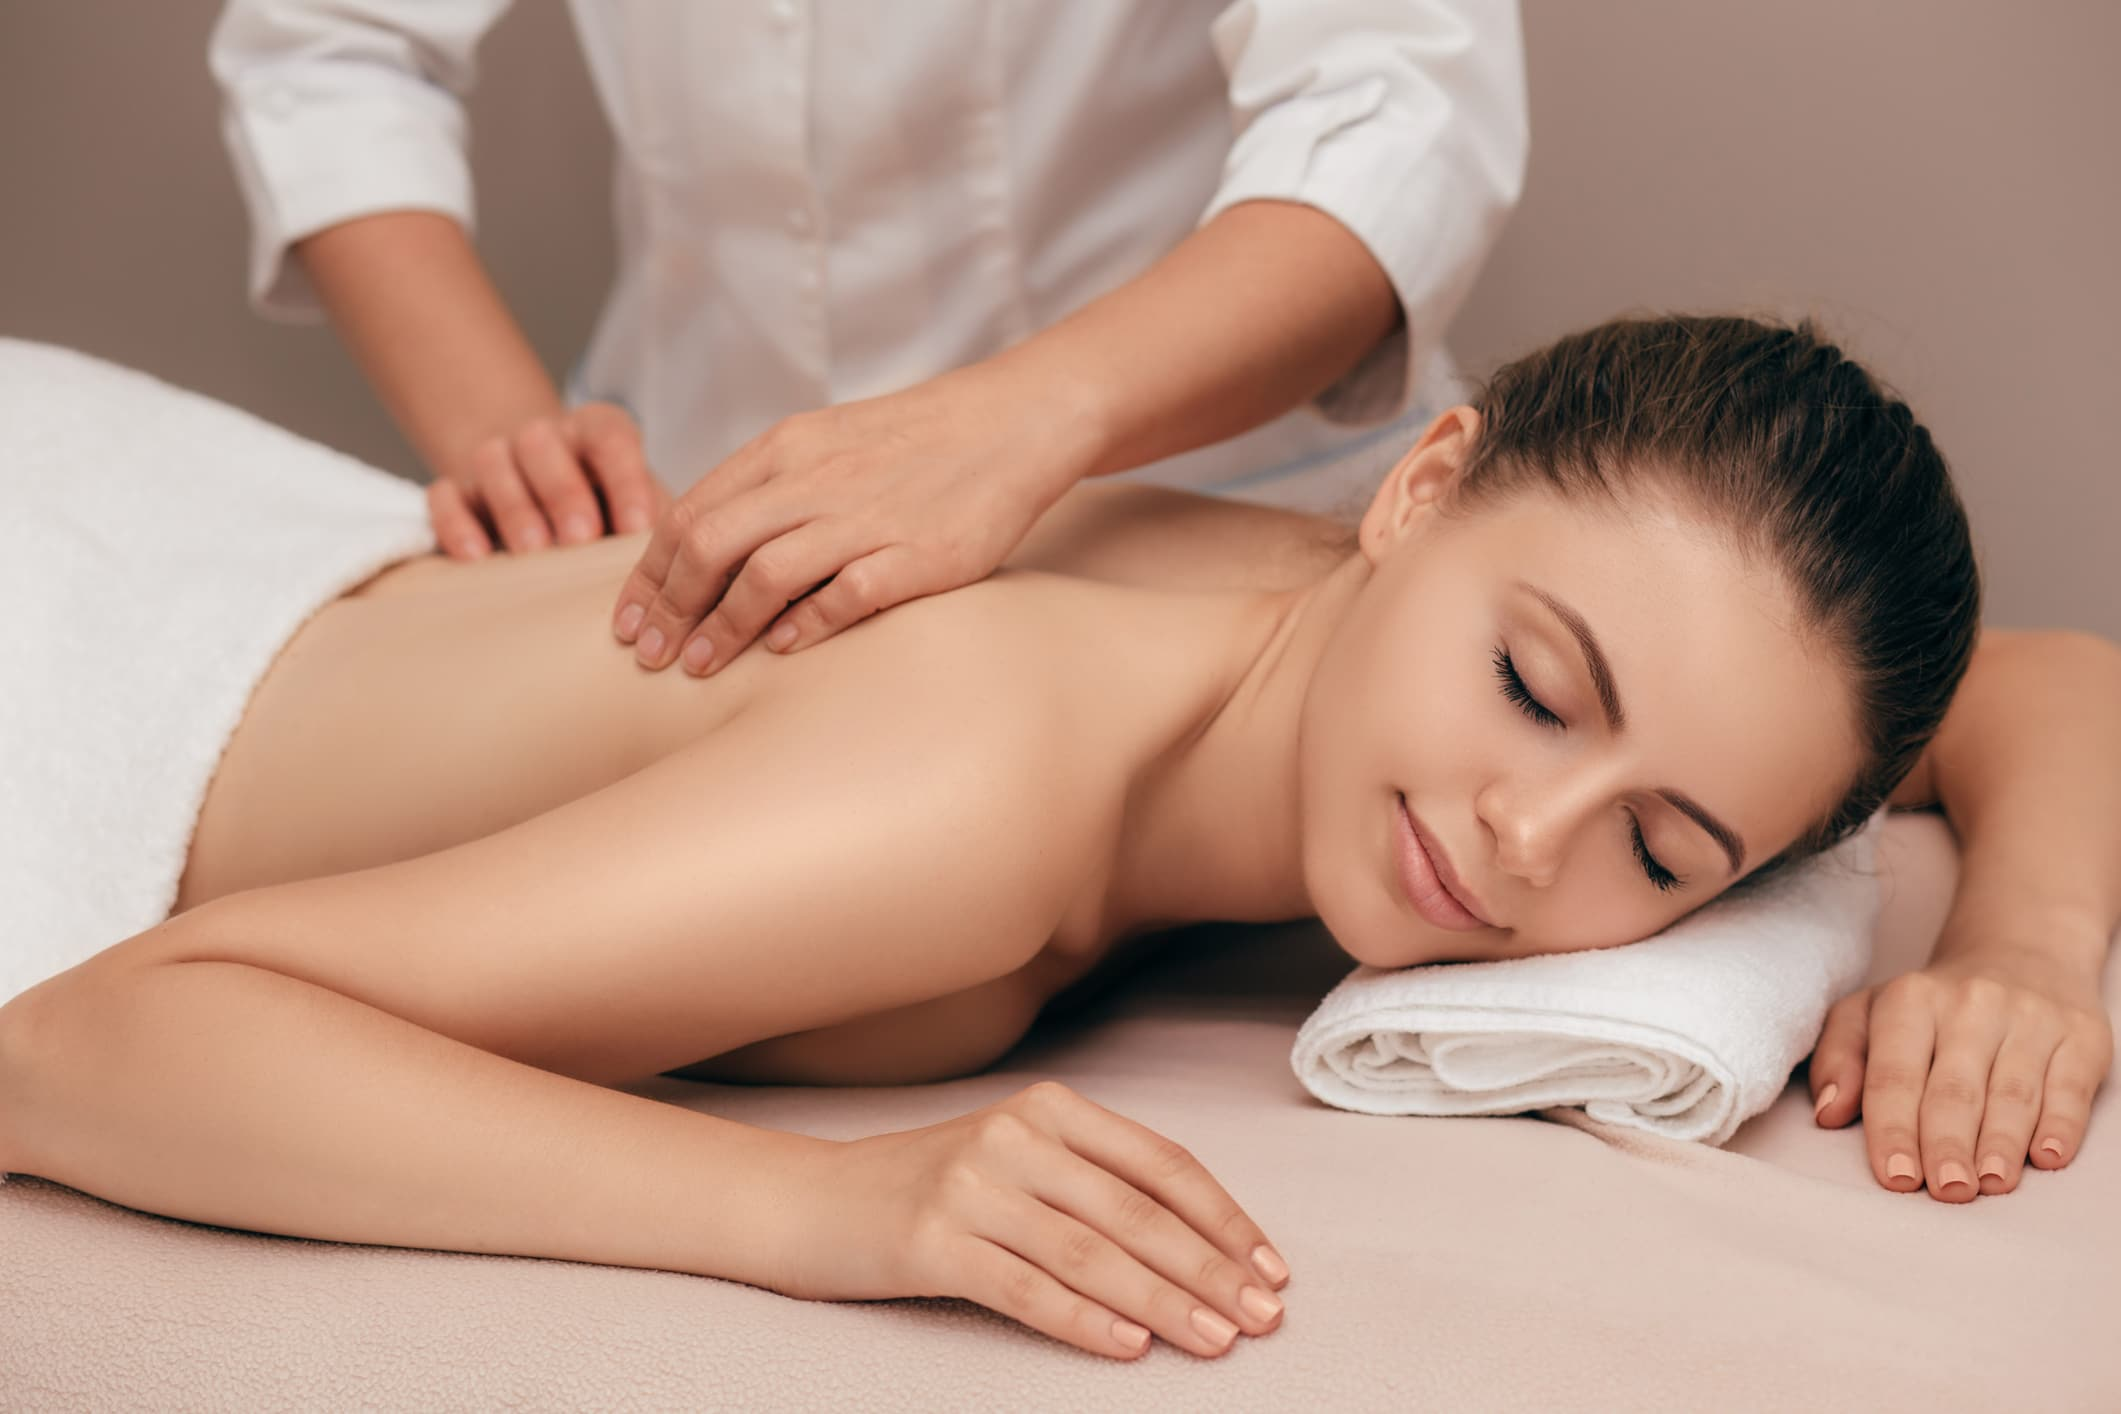 Young smiling woman receiving back massage from a massage professional at beauty salon